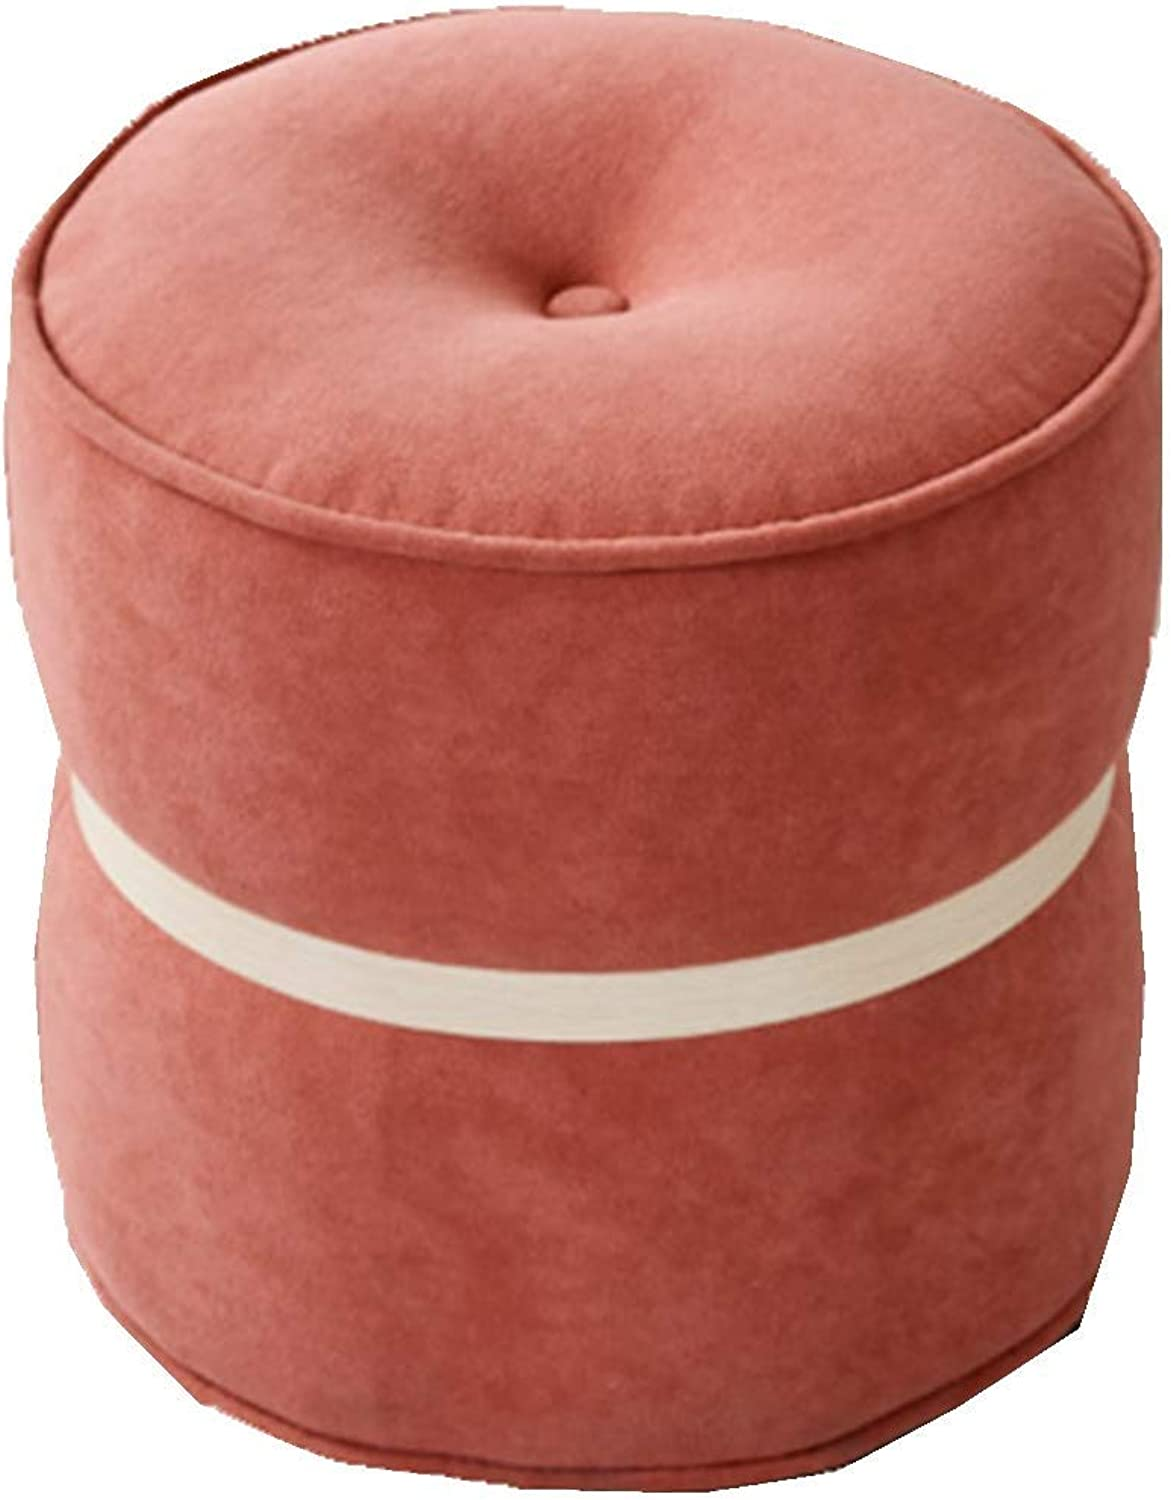 Footstool Step Stools Low Stool Stool Foot Dressing Stool Fabric Chair Makeup Stool Round Stool Change shoes Bench Household Small Stool HENGXIAO (color   Pink)